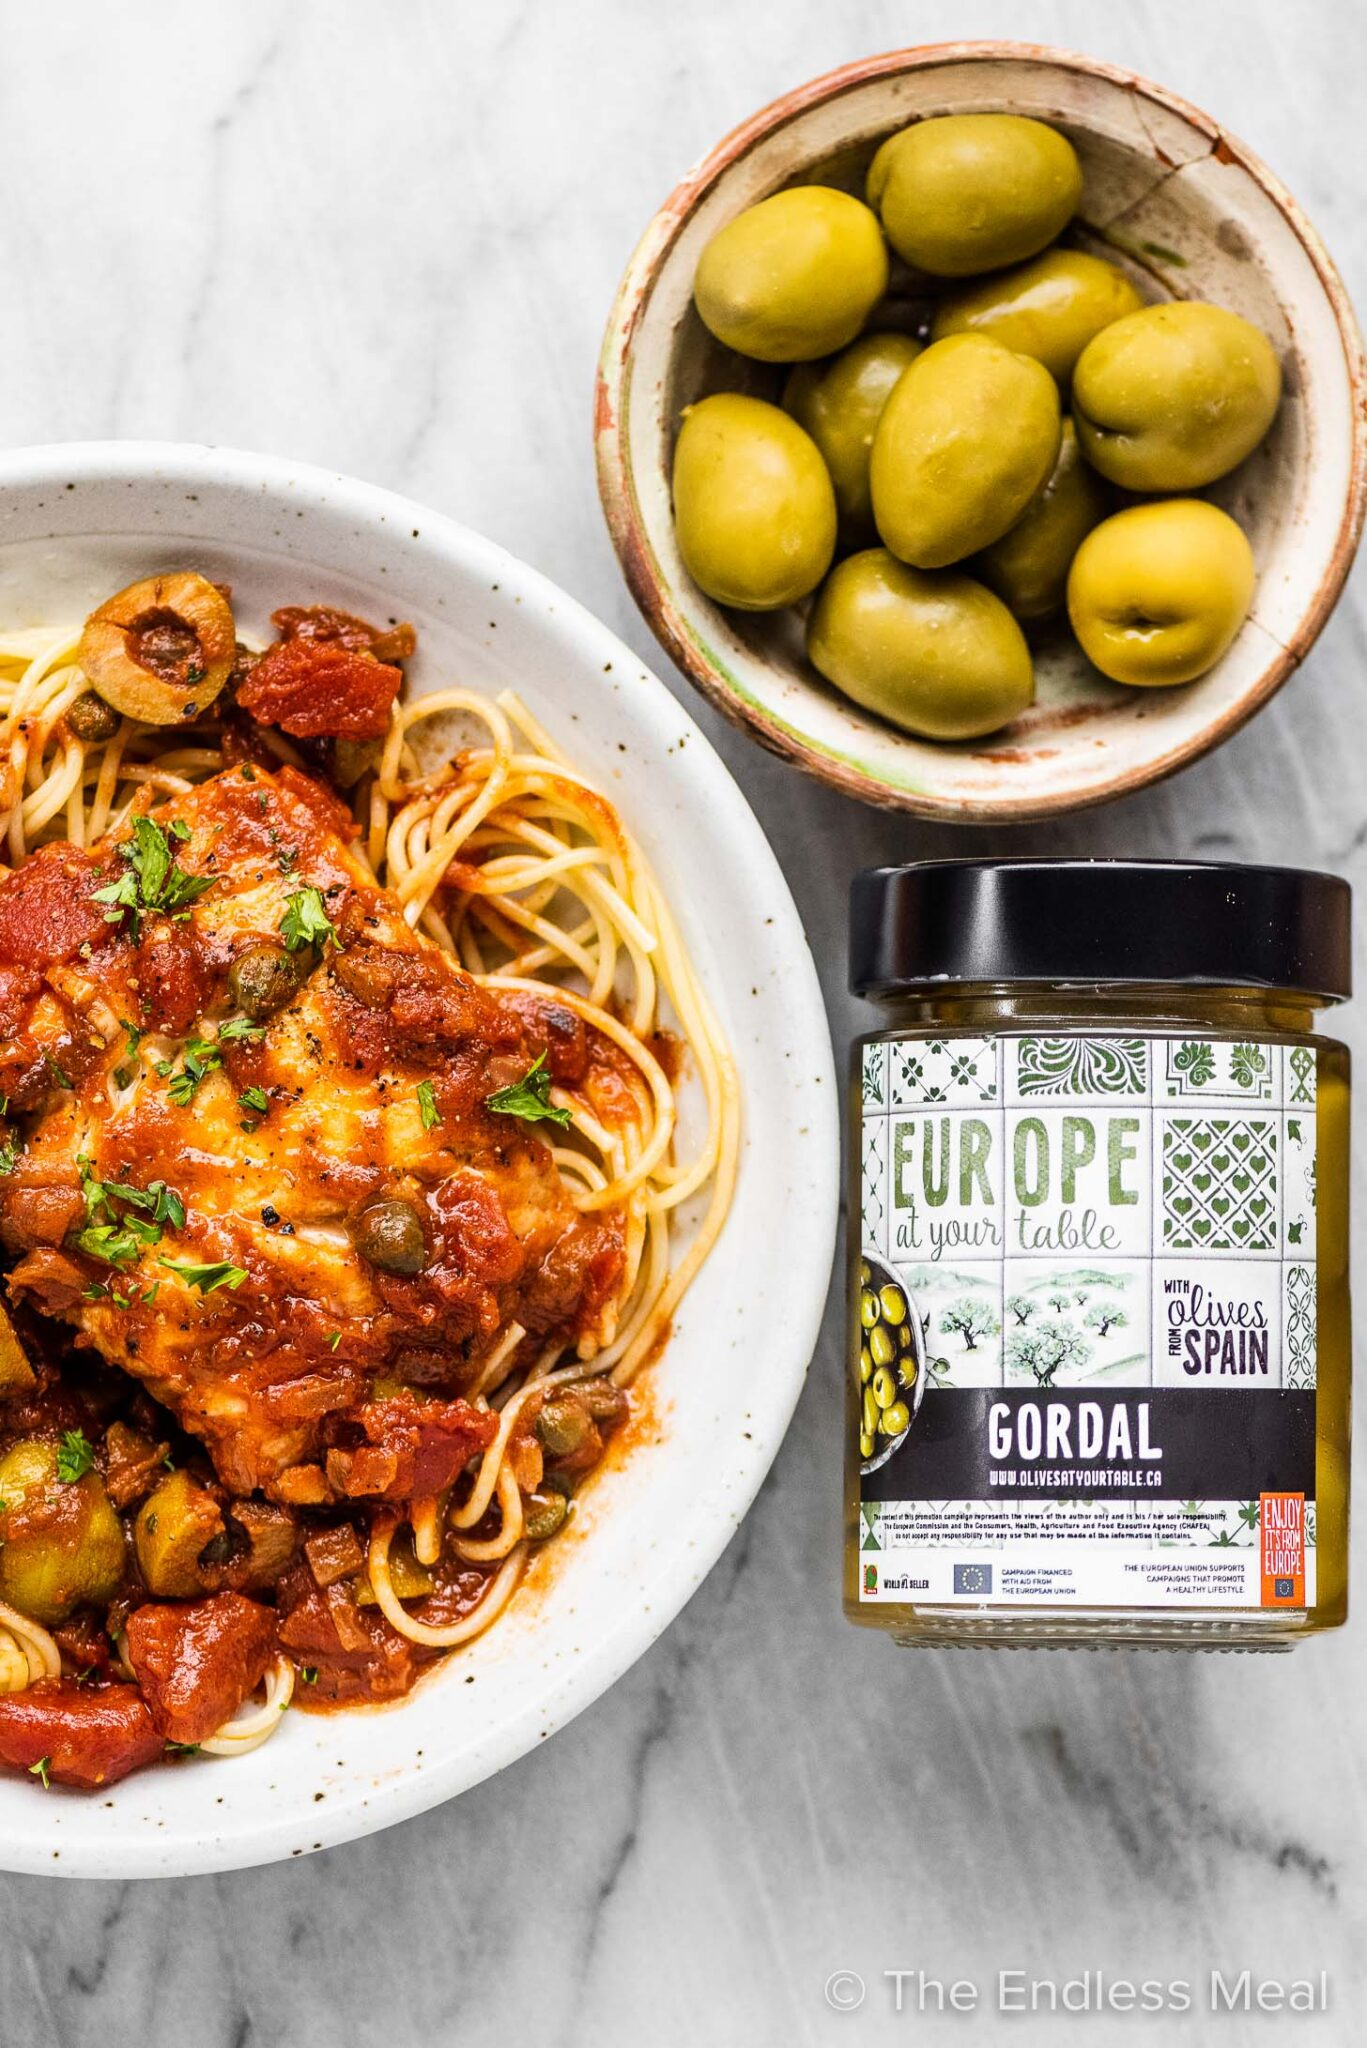 A jar of Gordal olives beside a plate of pasta with cod.